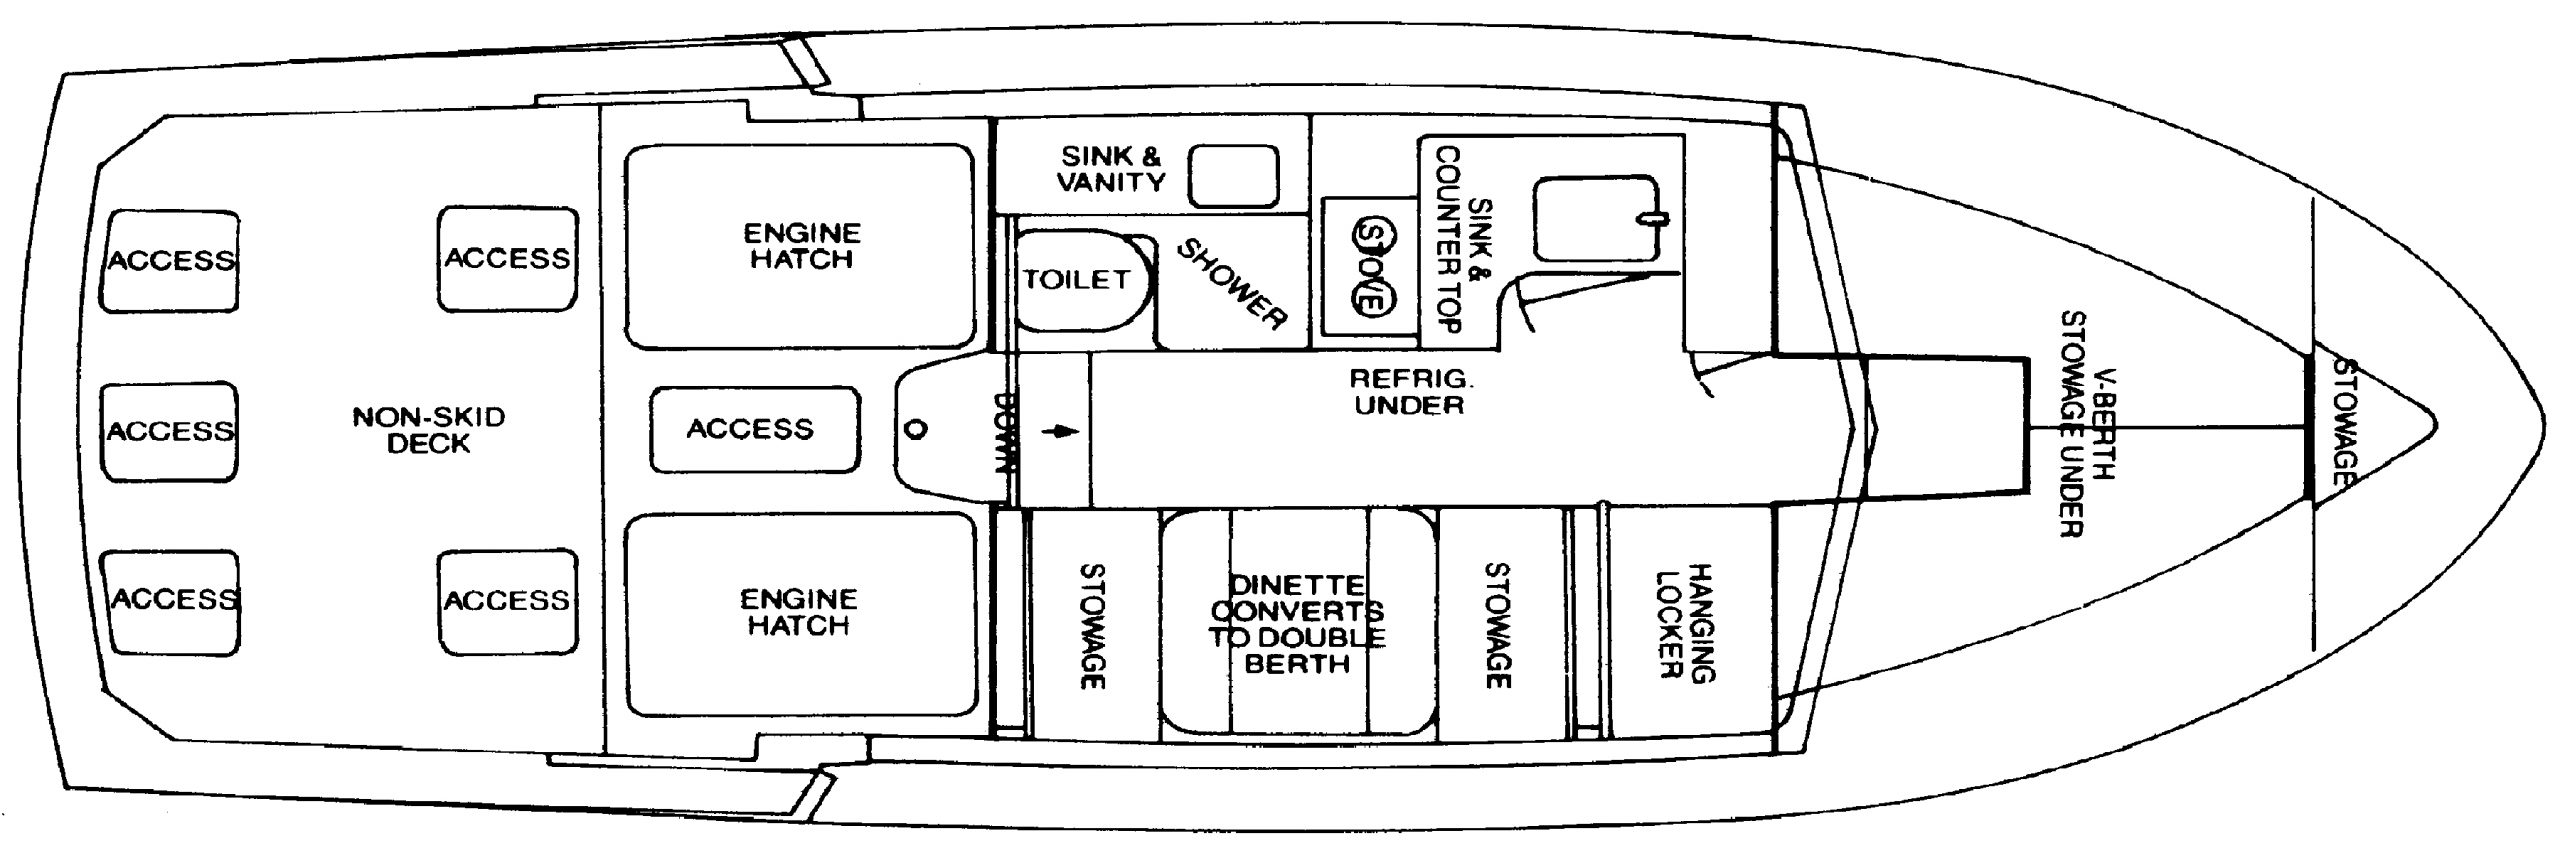 Bertram 28 Flybridge Cruiser Floor Plan 2